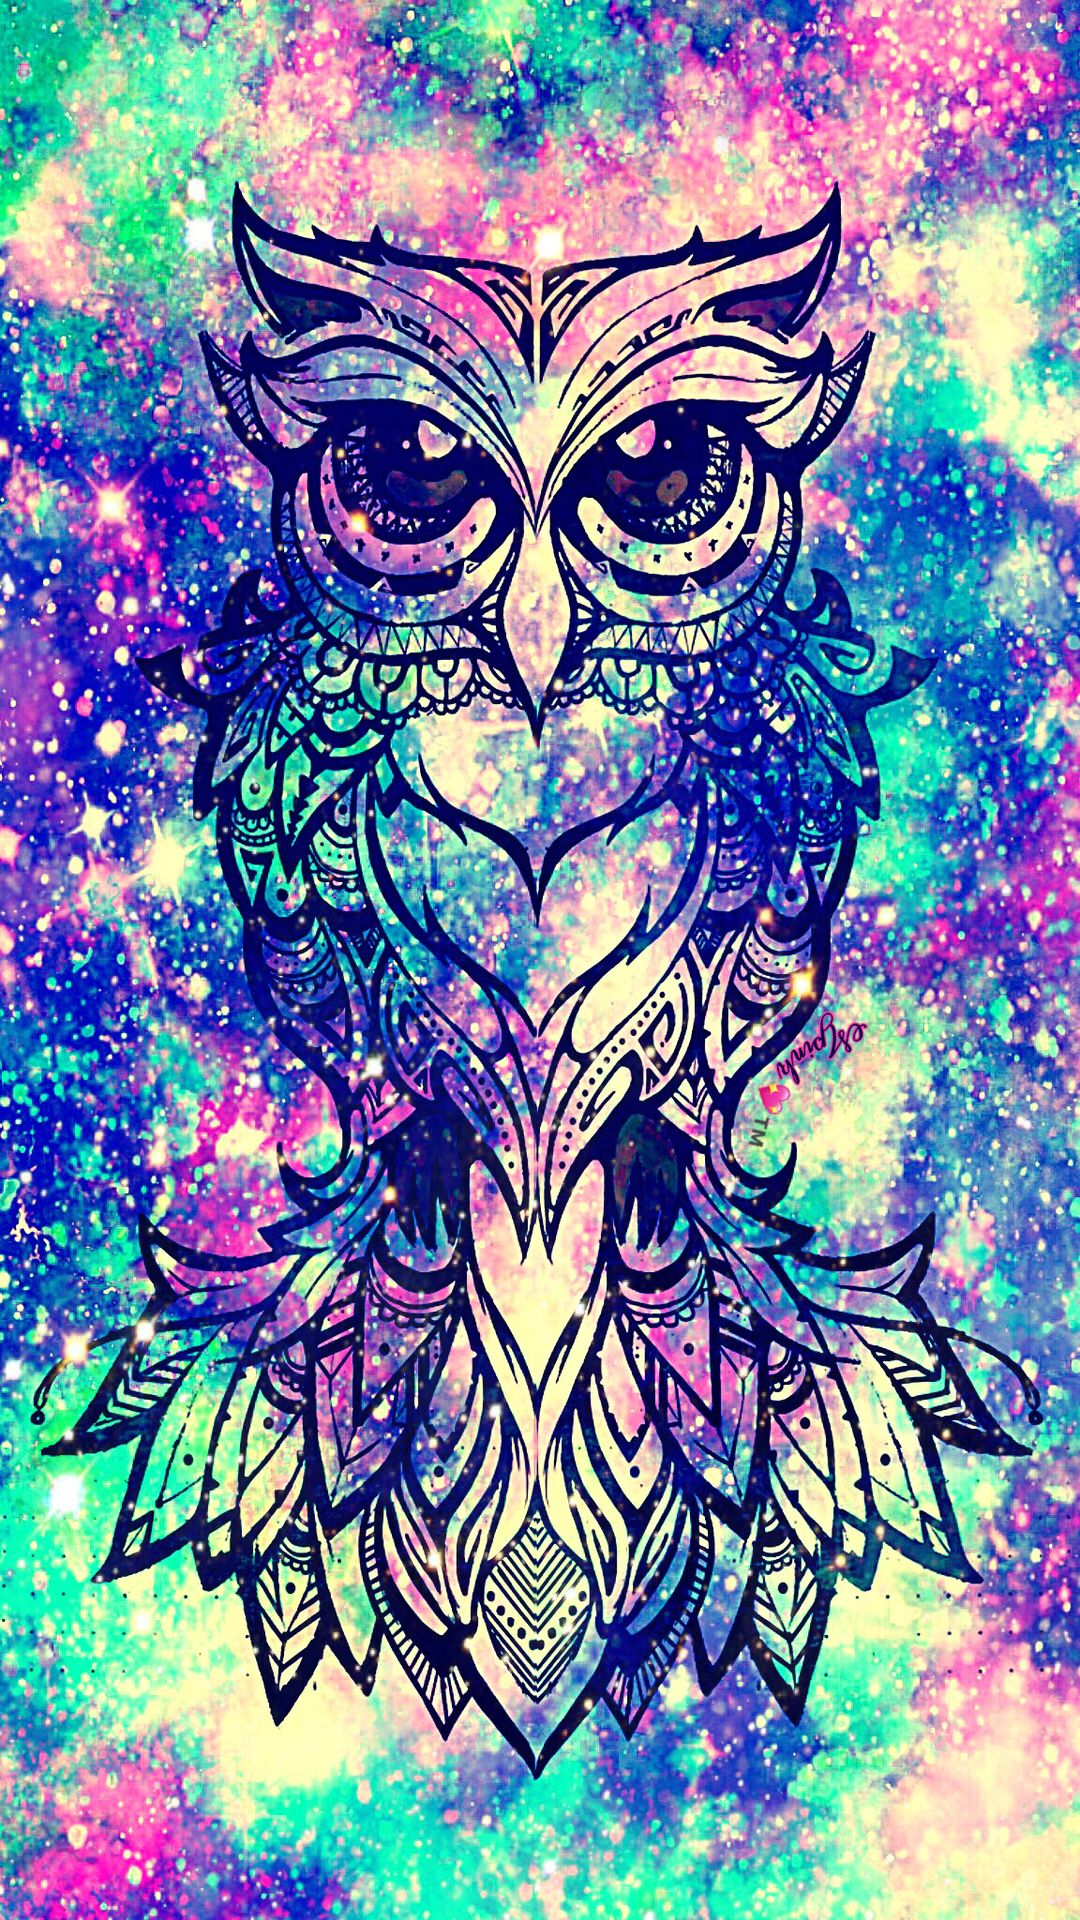 Mermaid Quotes For Phone Wallpaper Pretty Owl Galaxy Wallpaper Androidwallpaper